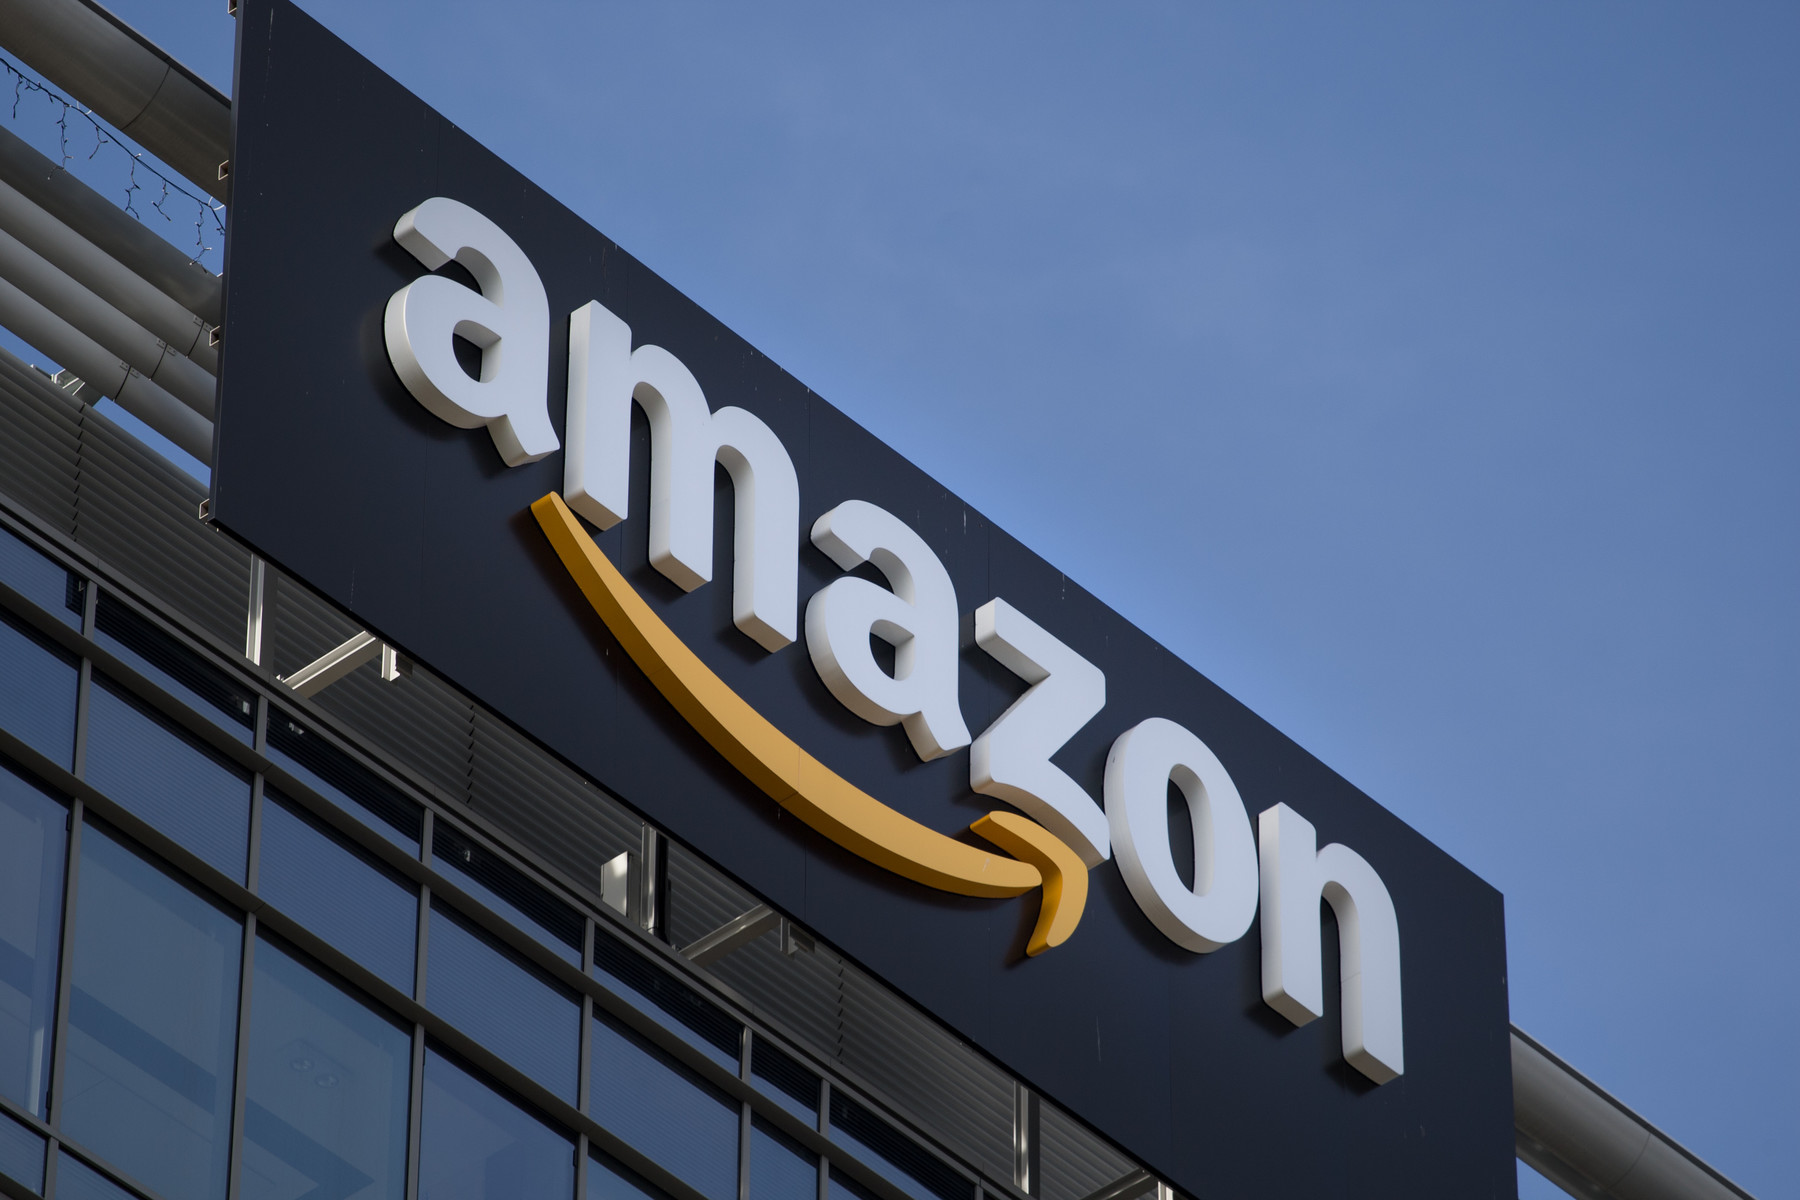 Robots replace 20,000 workers at Amazon - NotebookCheck net News